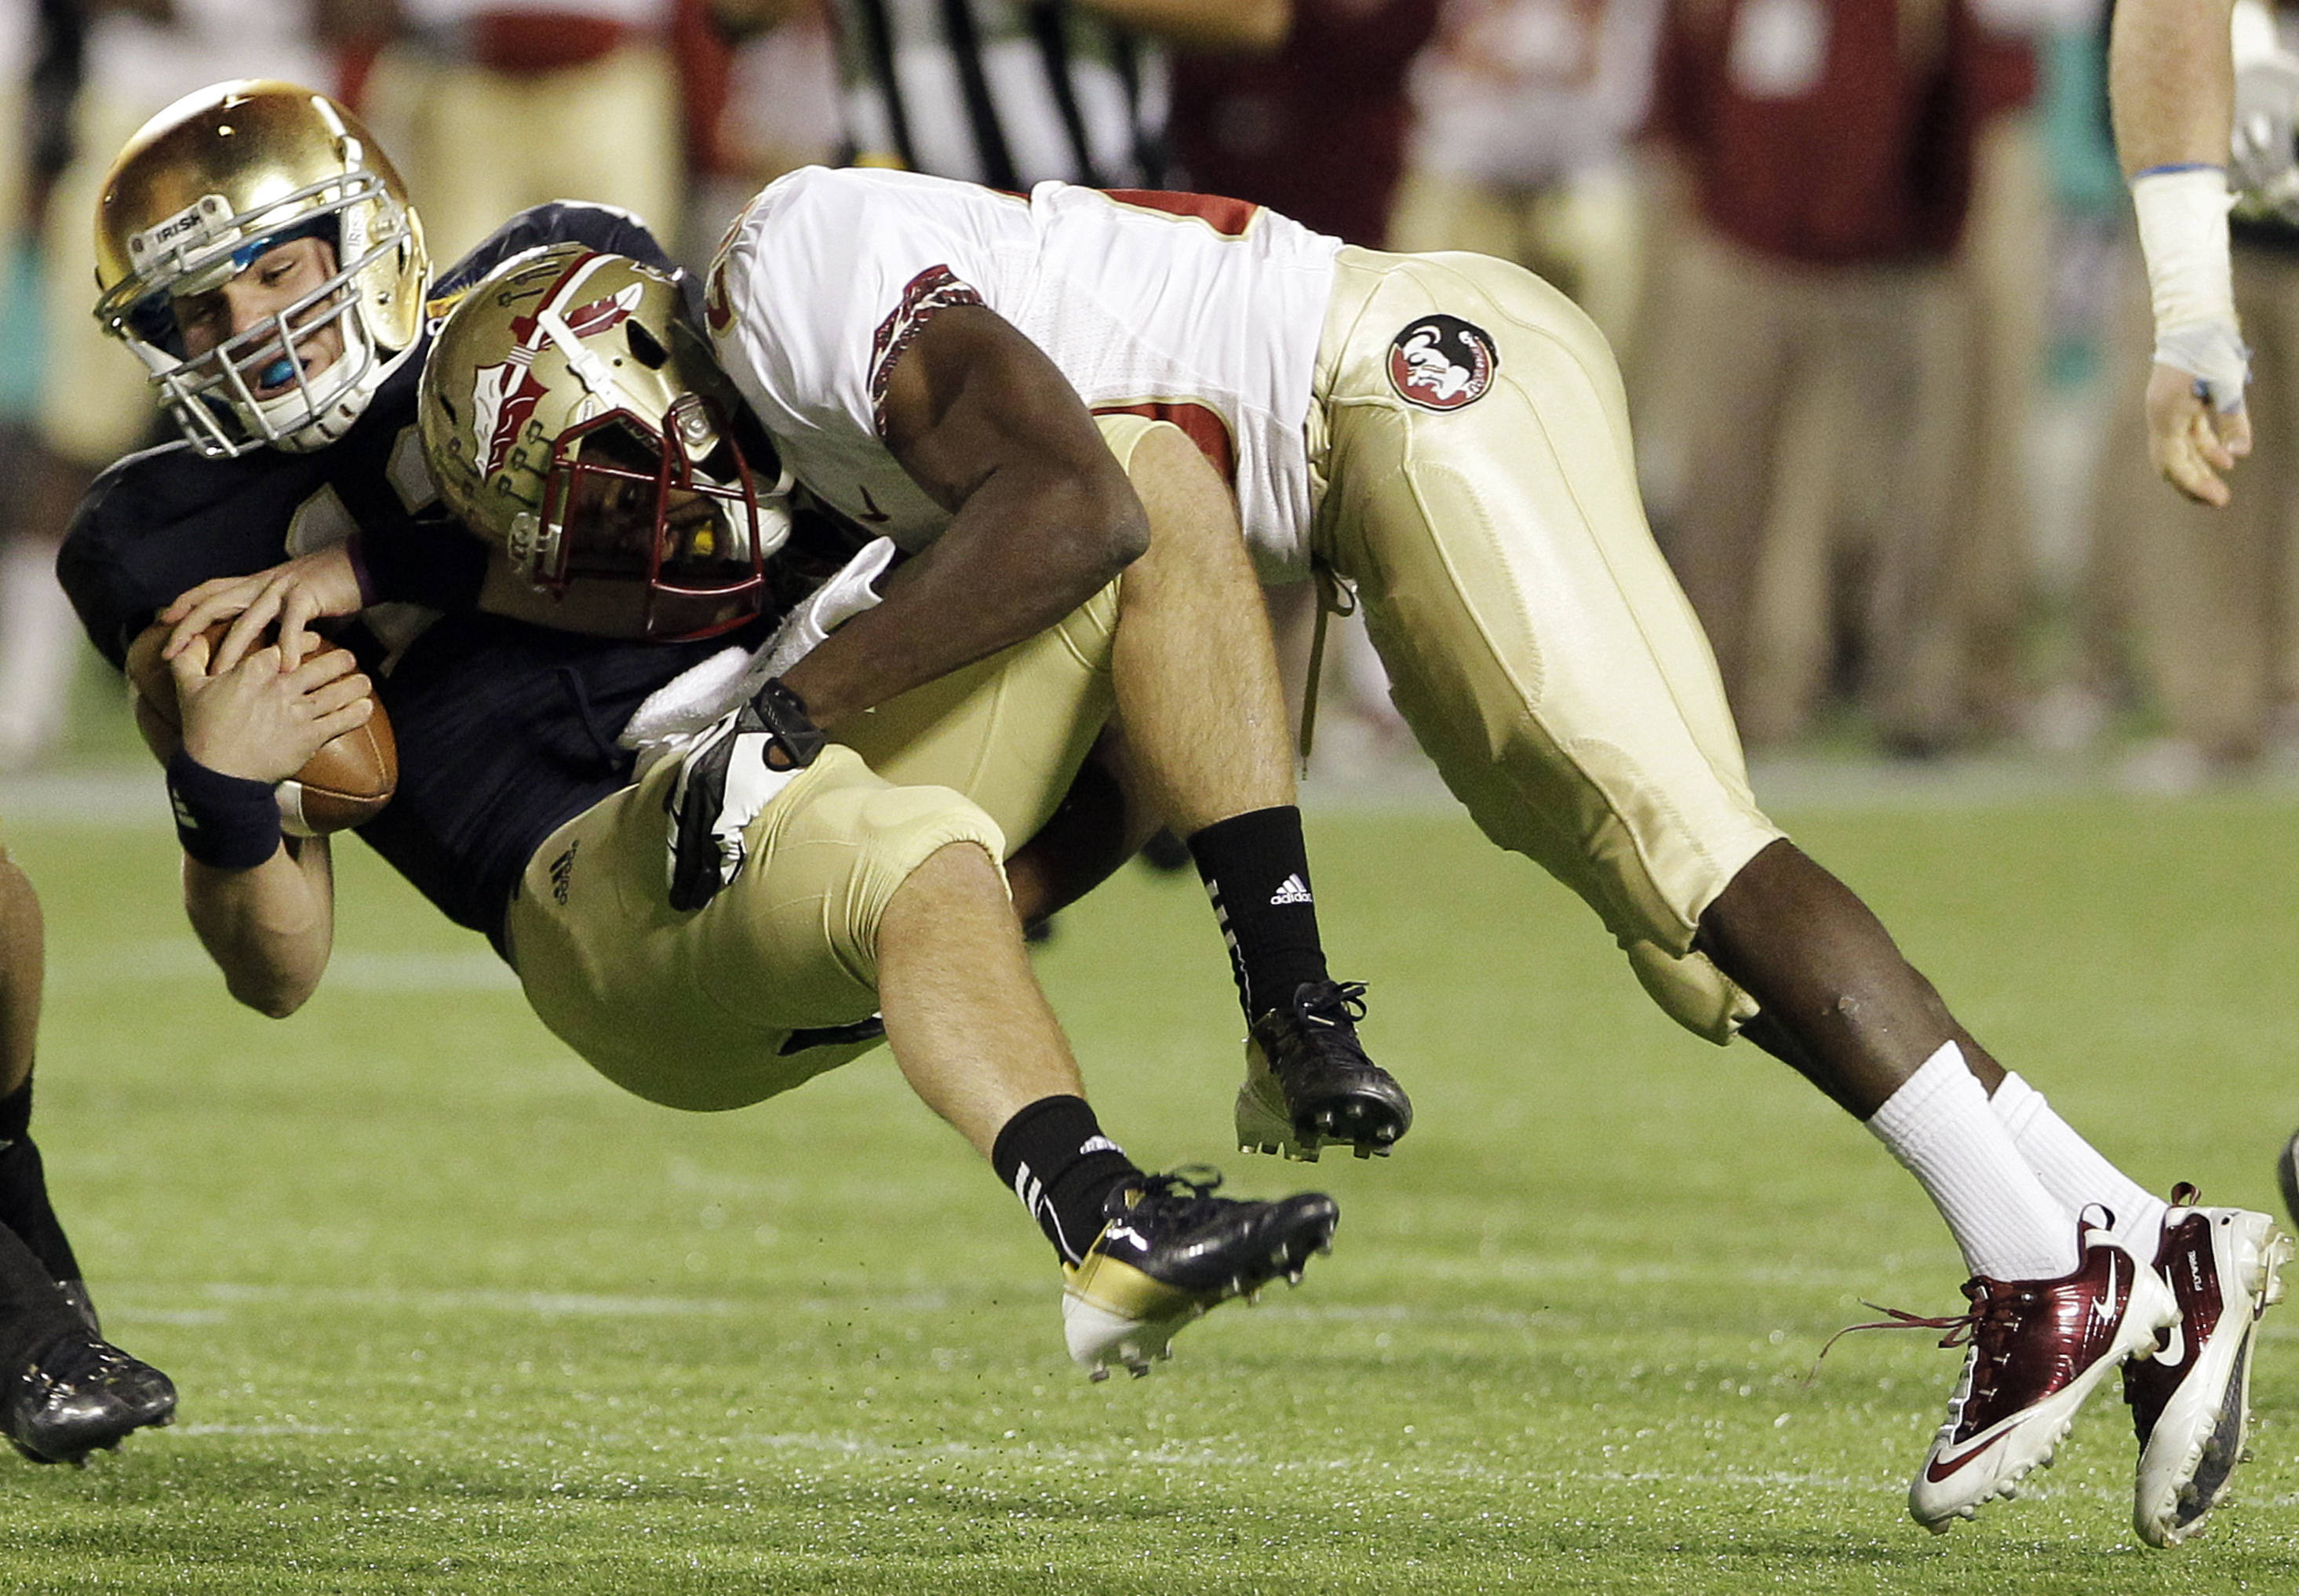 Notre Dame quarterback Tommy Rees, left, is stopped after a short gain by Florida State safety Lamarcus Joyner during the first half. (AP Photo/John Raoux)